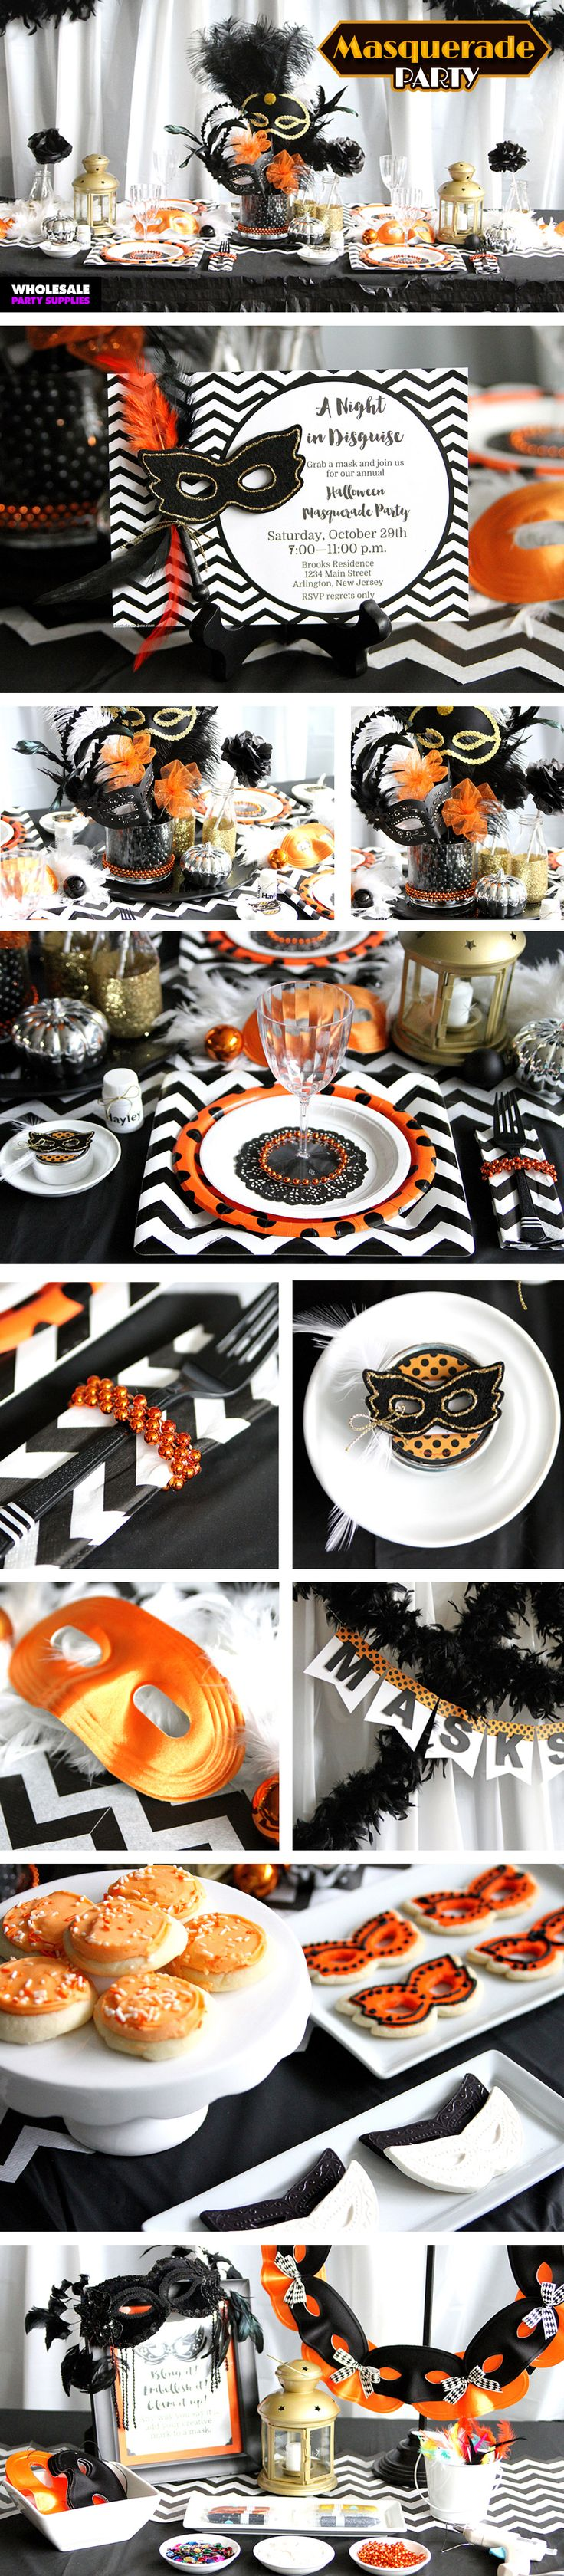 1000+ images about Halloween Party Ideas on Pinterest